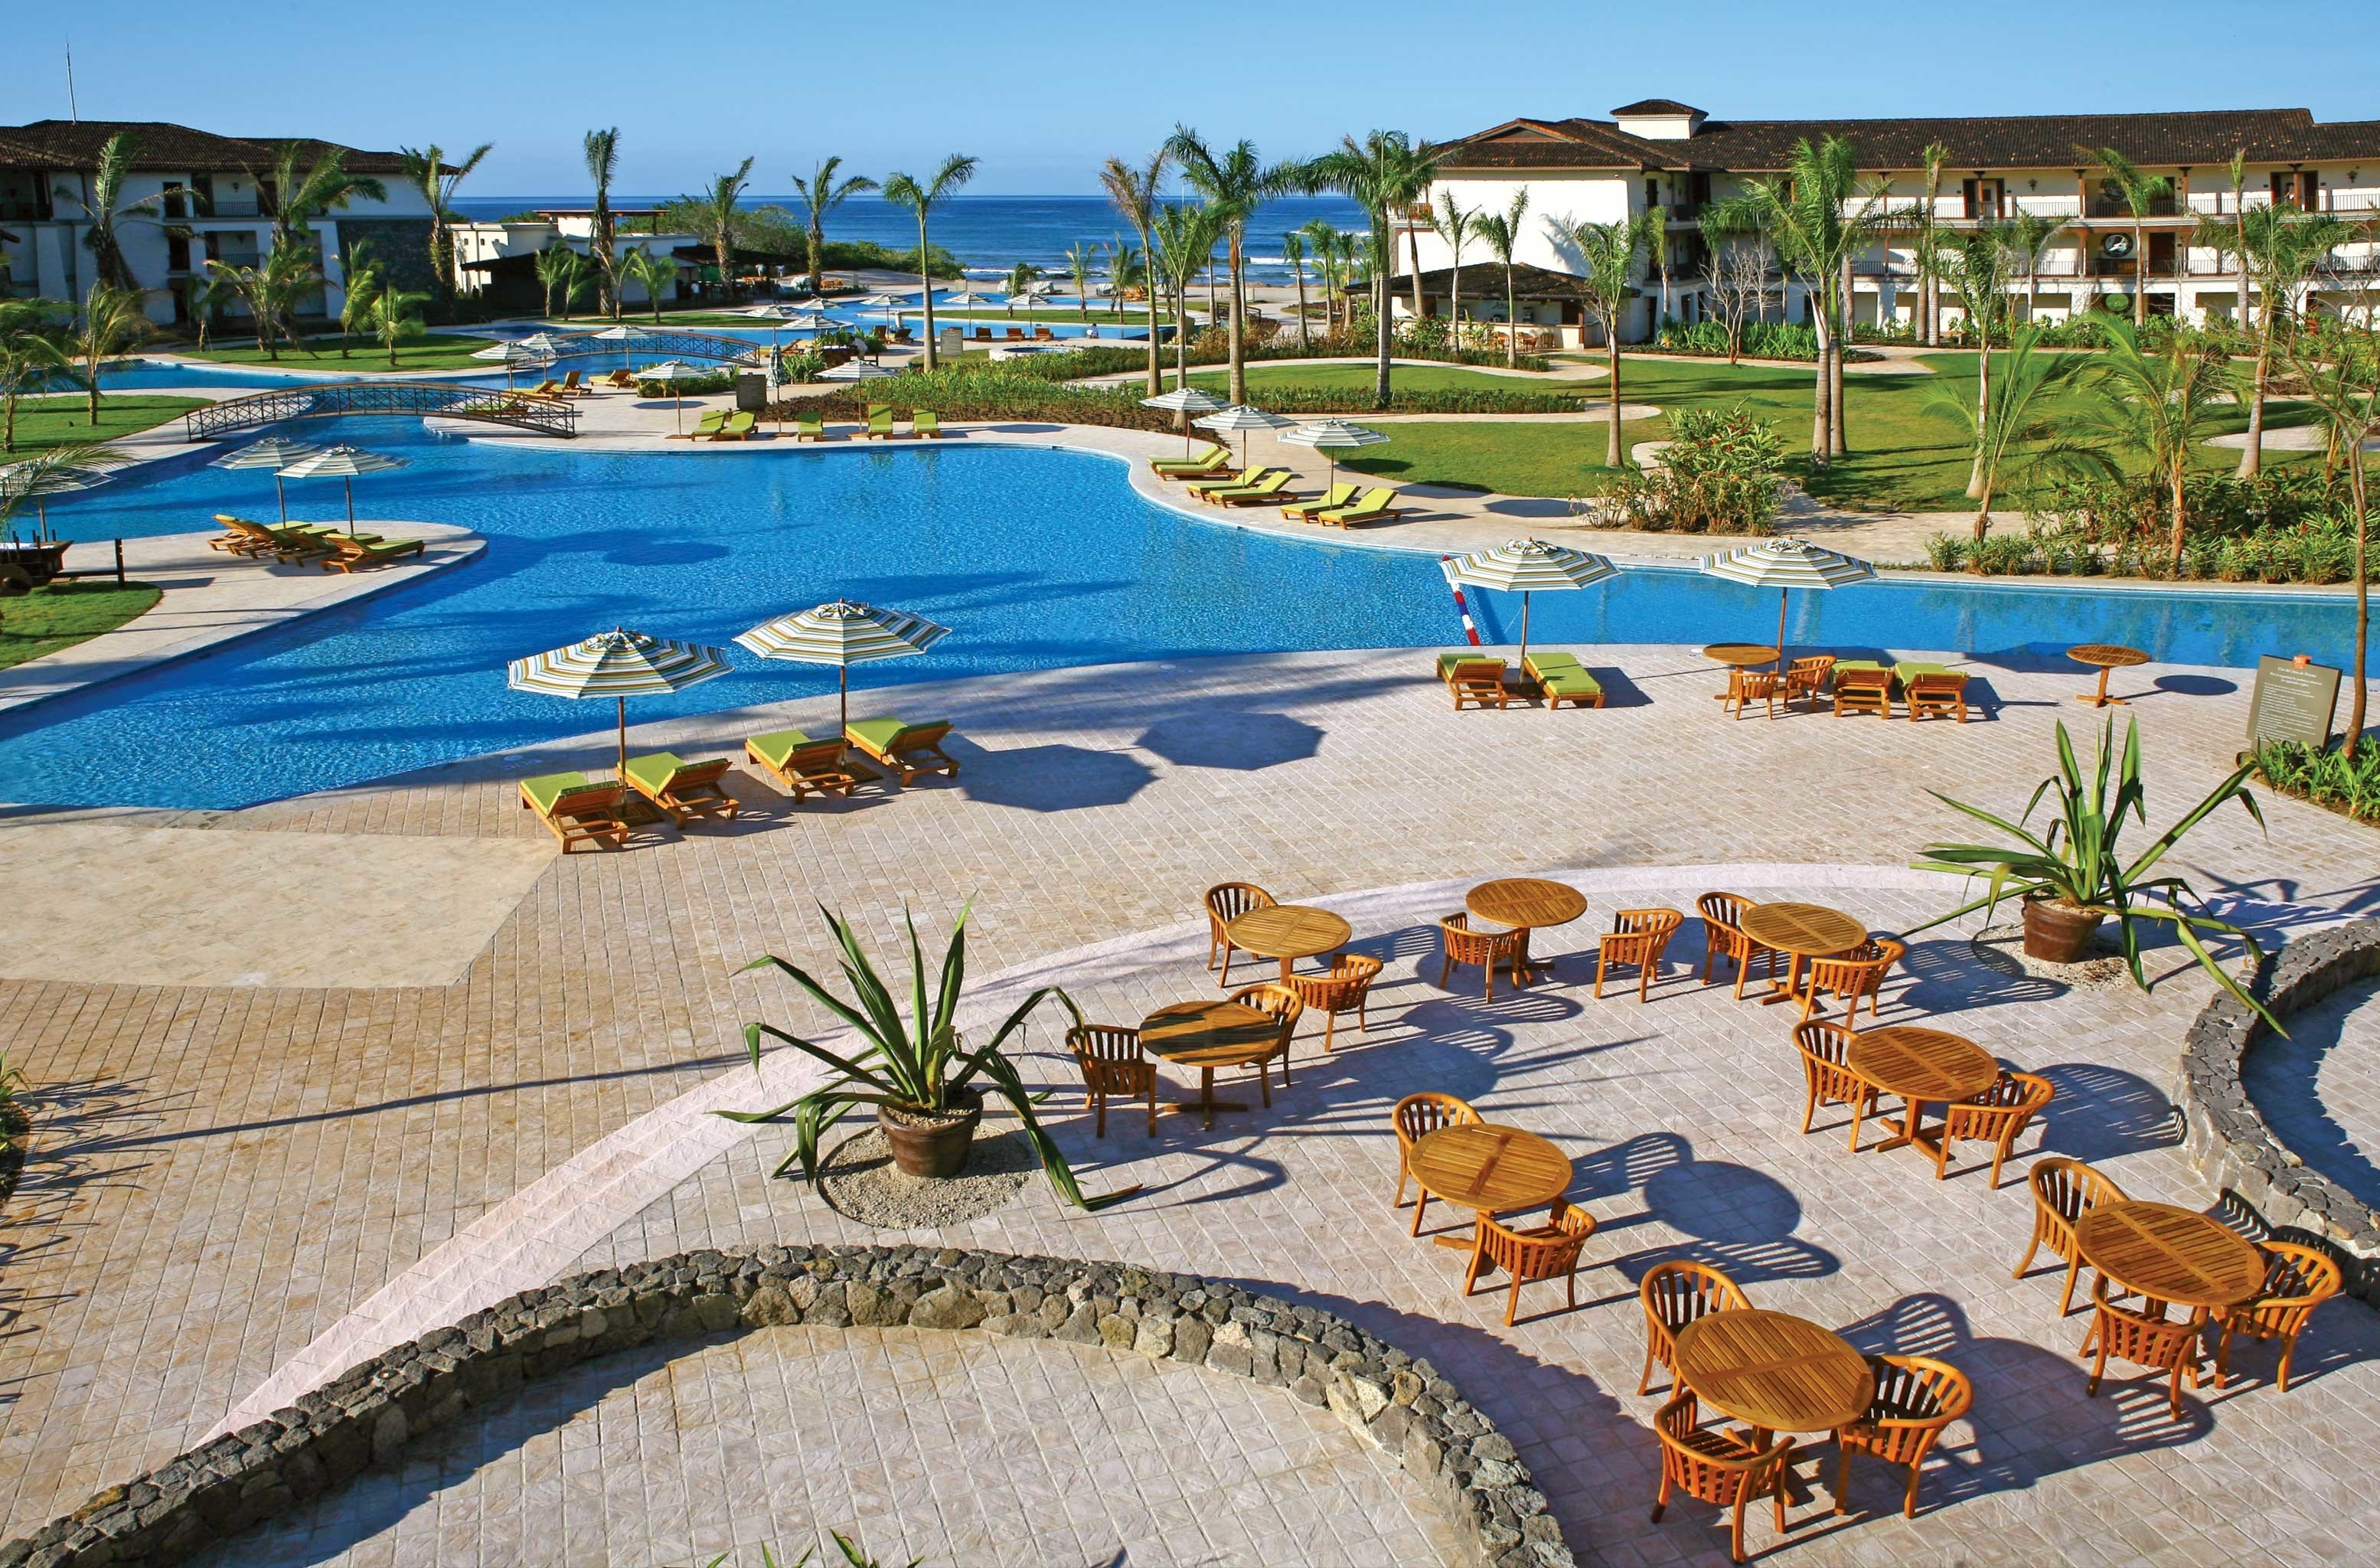 All-inclusive Architecture Buildings Exterior Hotels Pool Resort sky leisure swimming pool Beach Water park walkway Sea lawn marina dock lined shore sandy